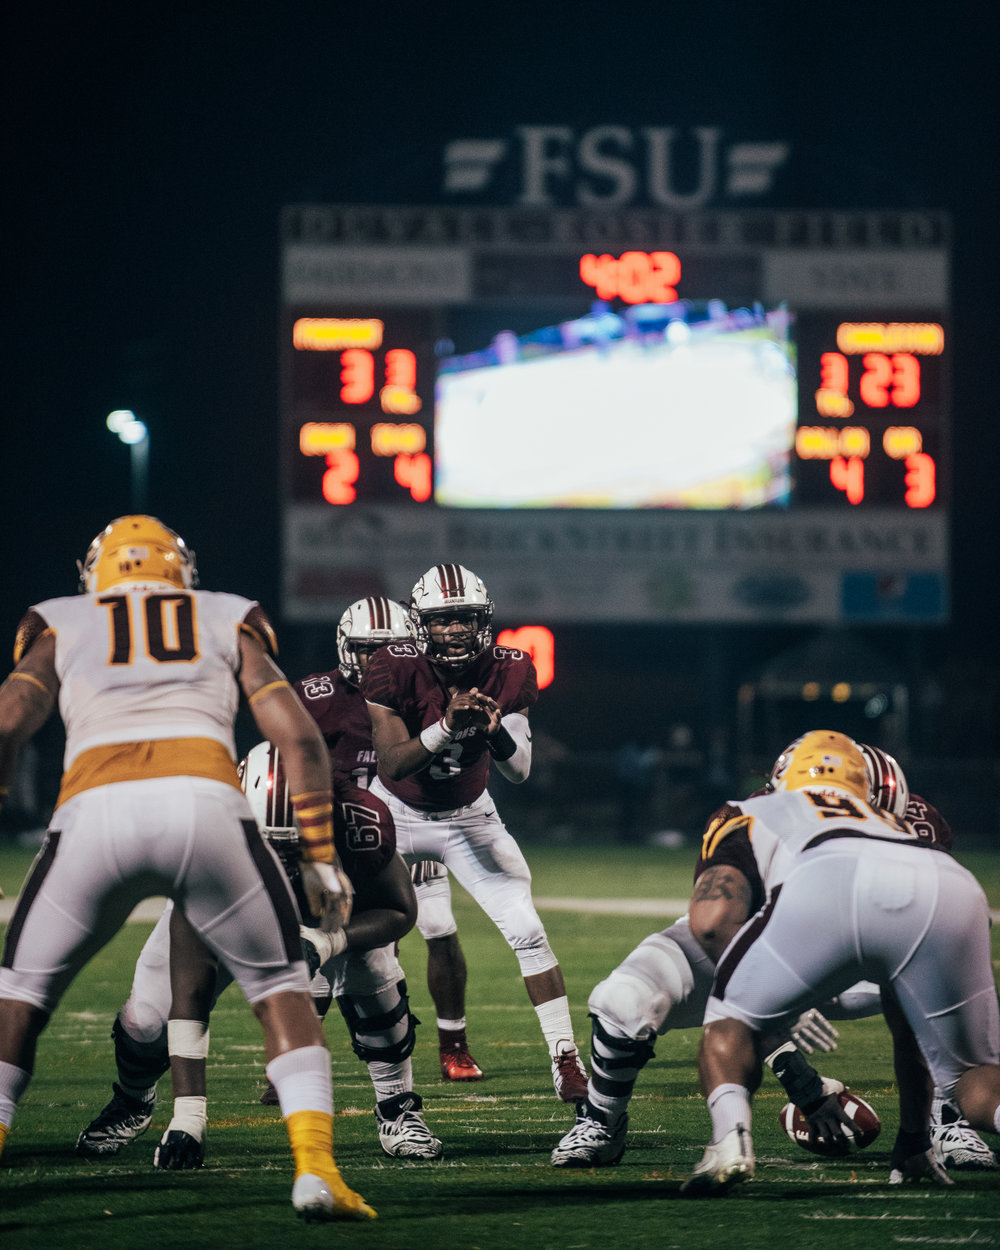 football vs charleston personal-14.jpg